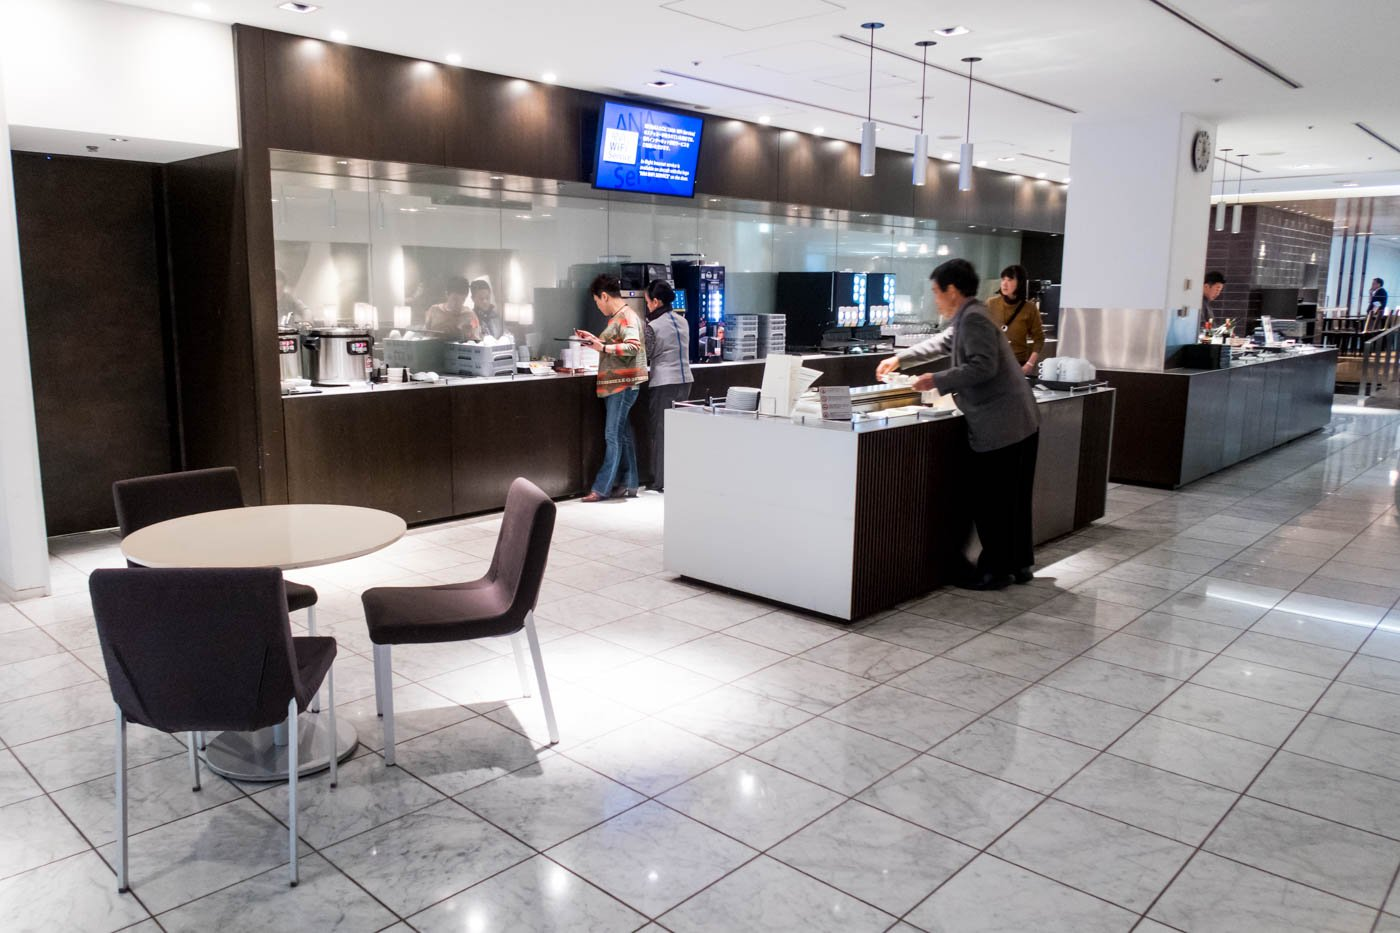 Buffet Area in the ANA Lounge